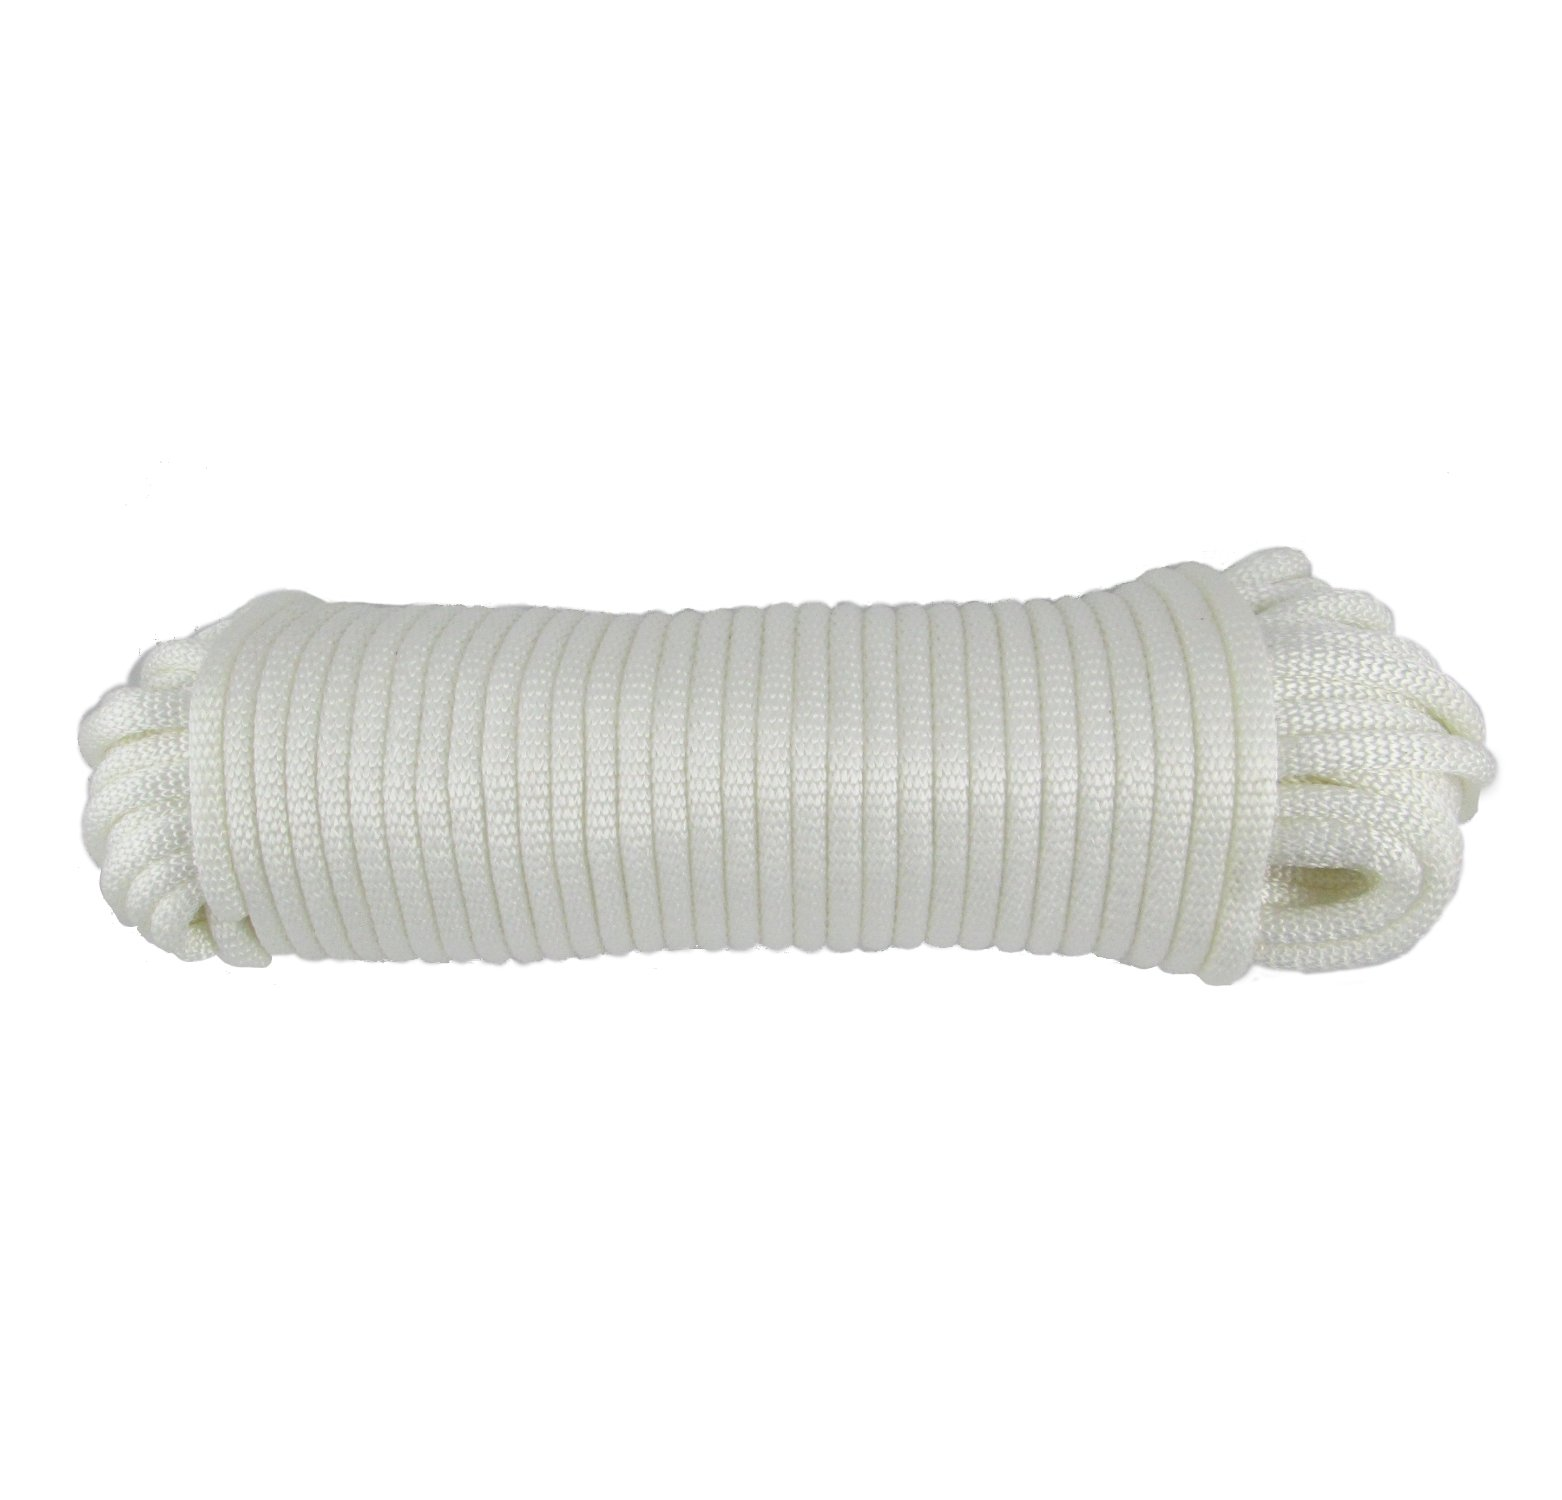 100% Polyester Rope 5/16'' X 100 Ft (#10)